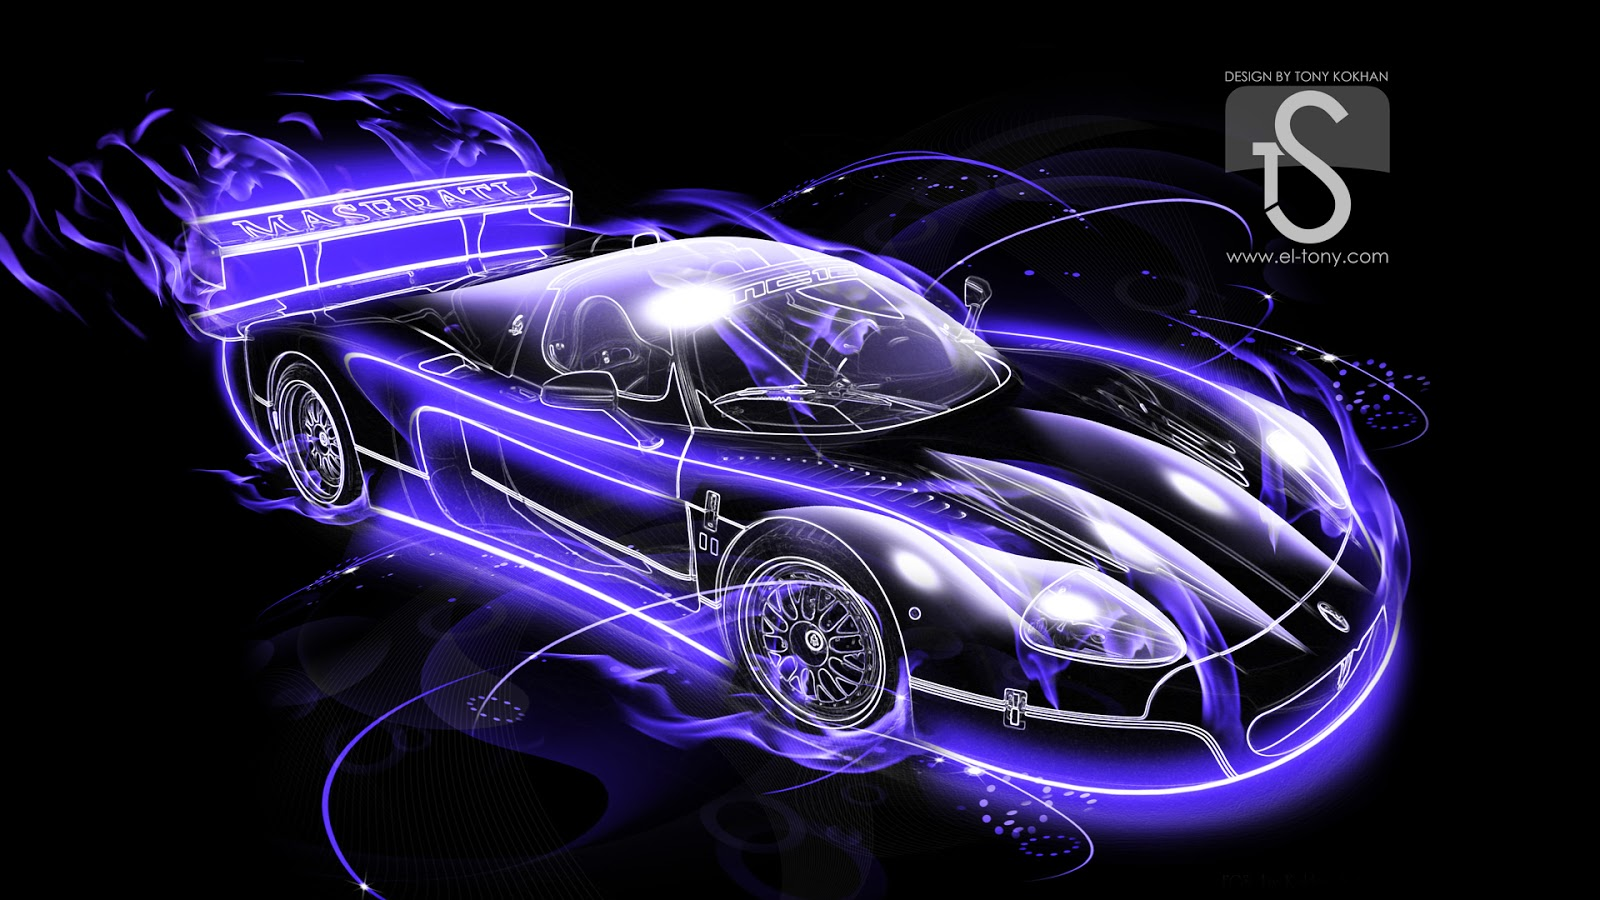 Cool Abstract Cars HD Wallpapers black car 3d abstract 1600x900